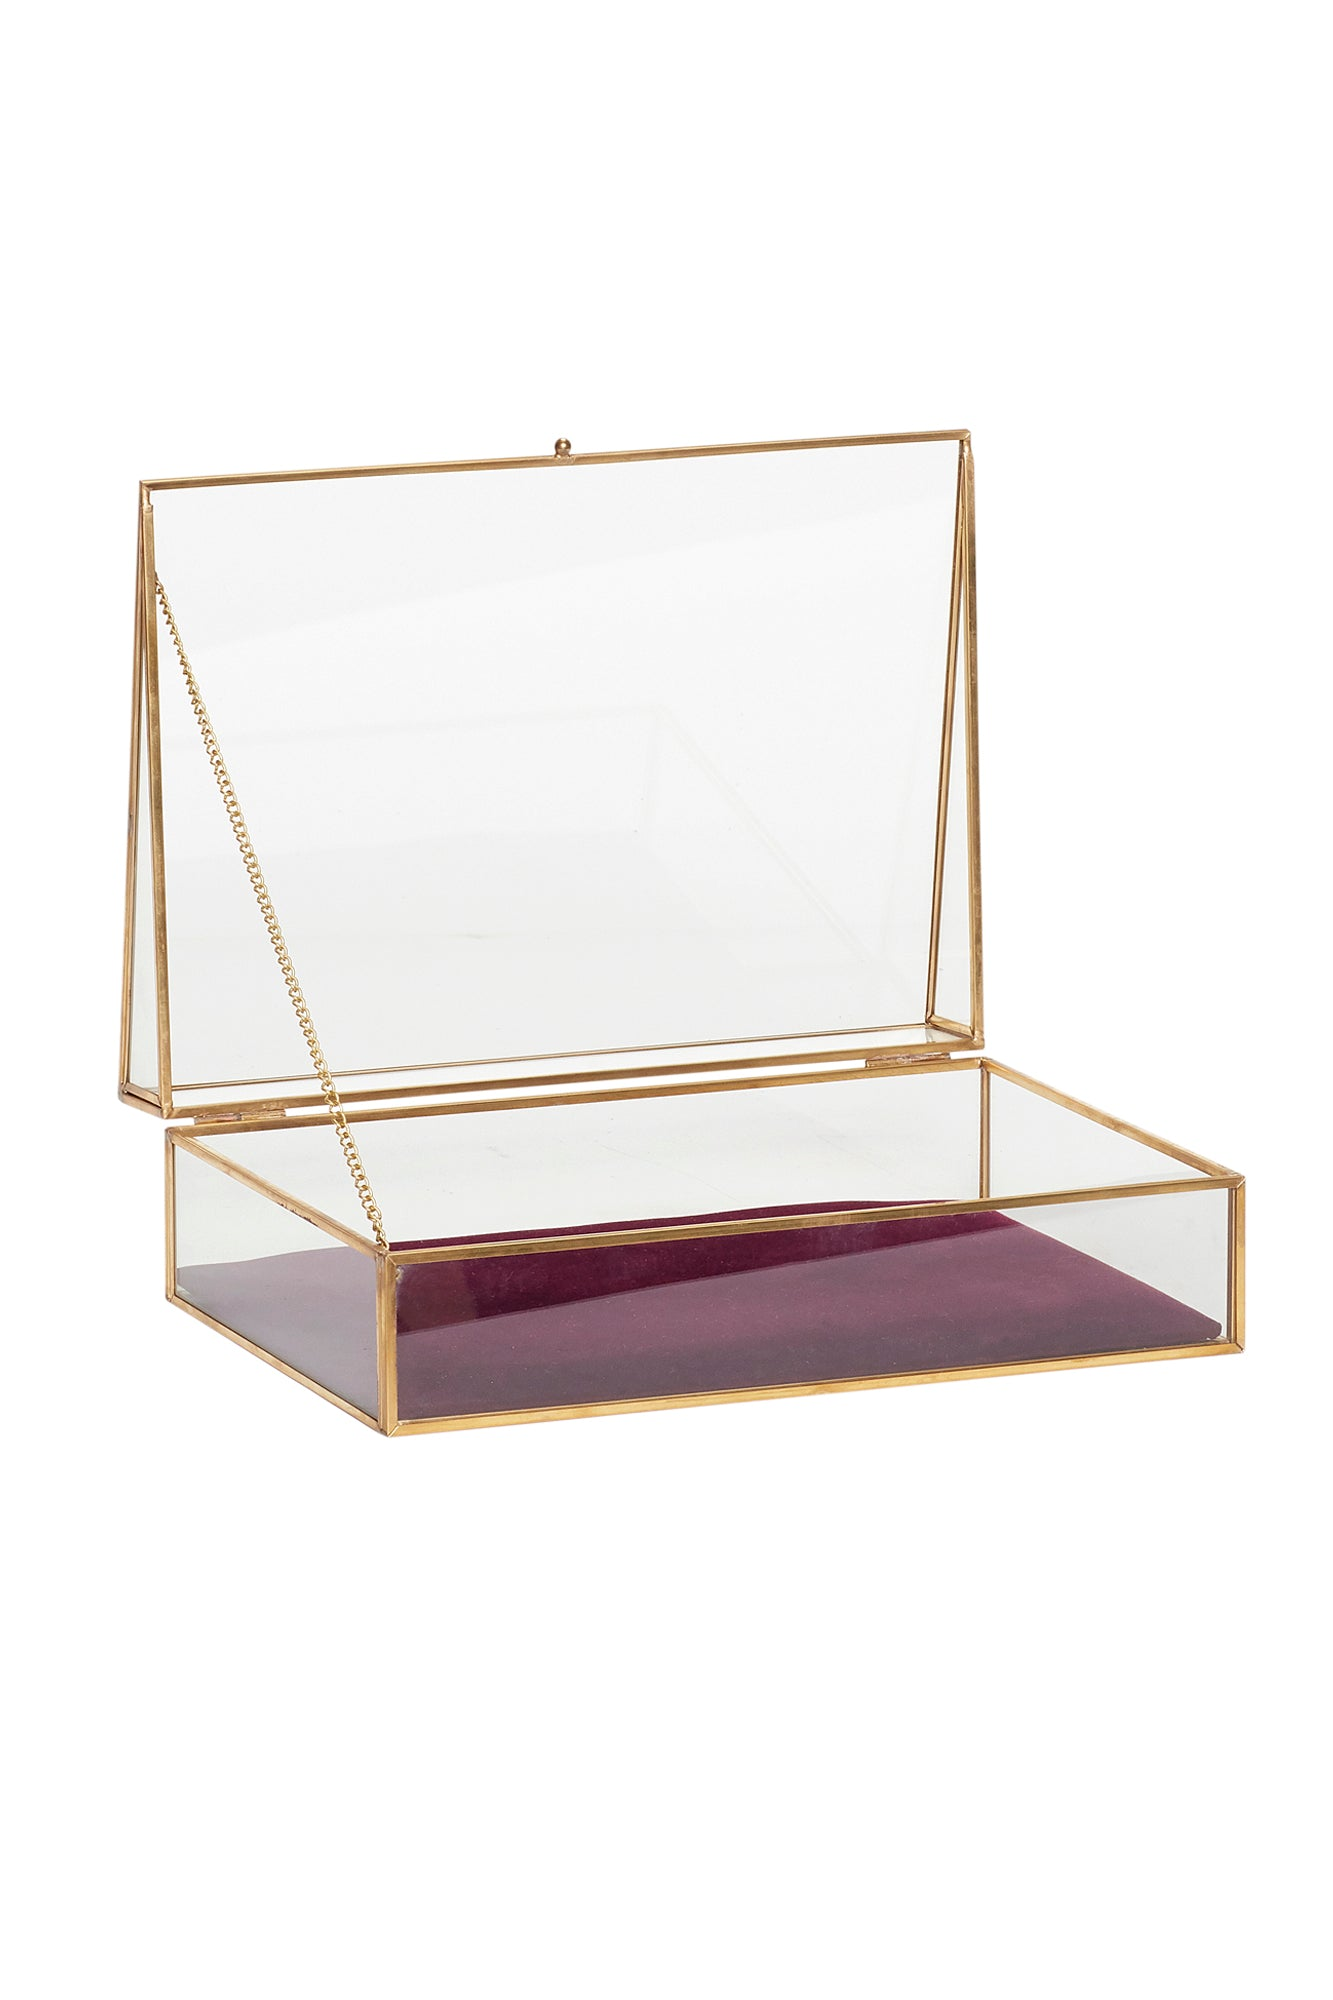 Glass Jewellery Box, Organizer, Hübsch - 3LittlePicks